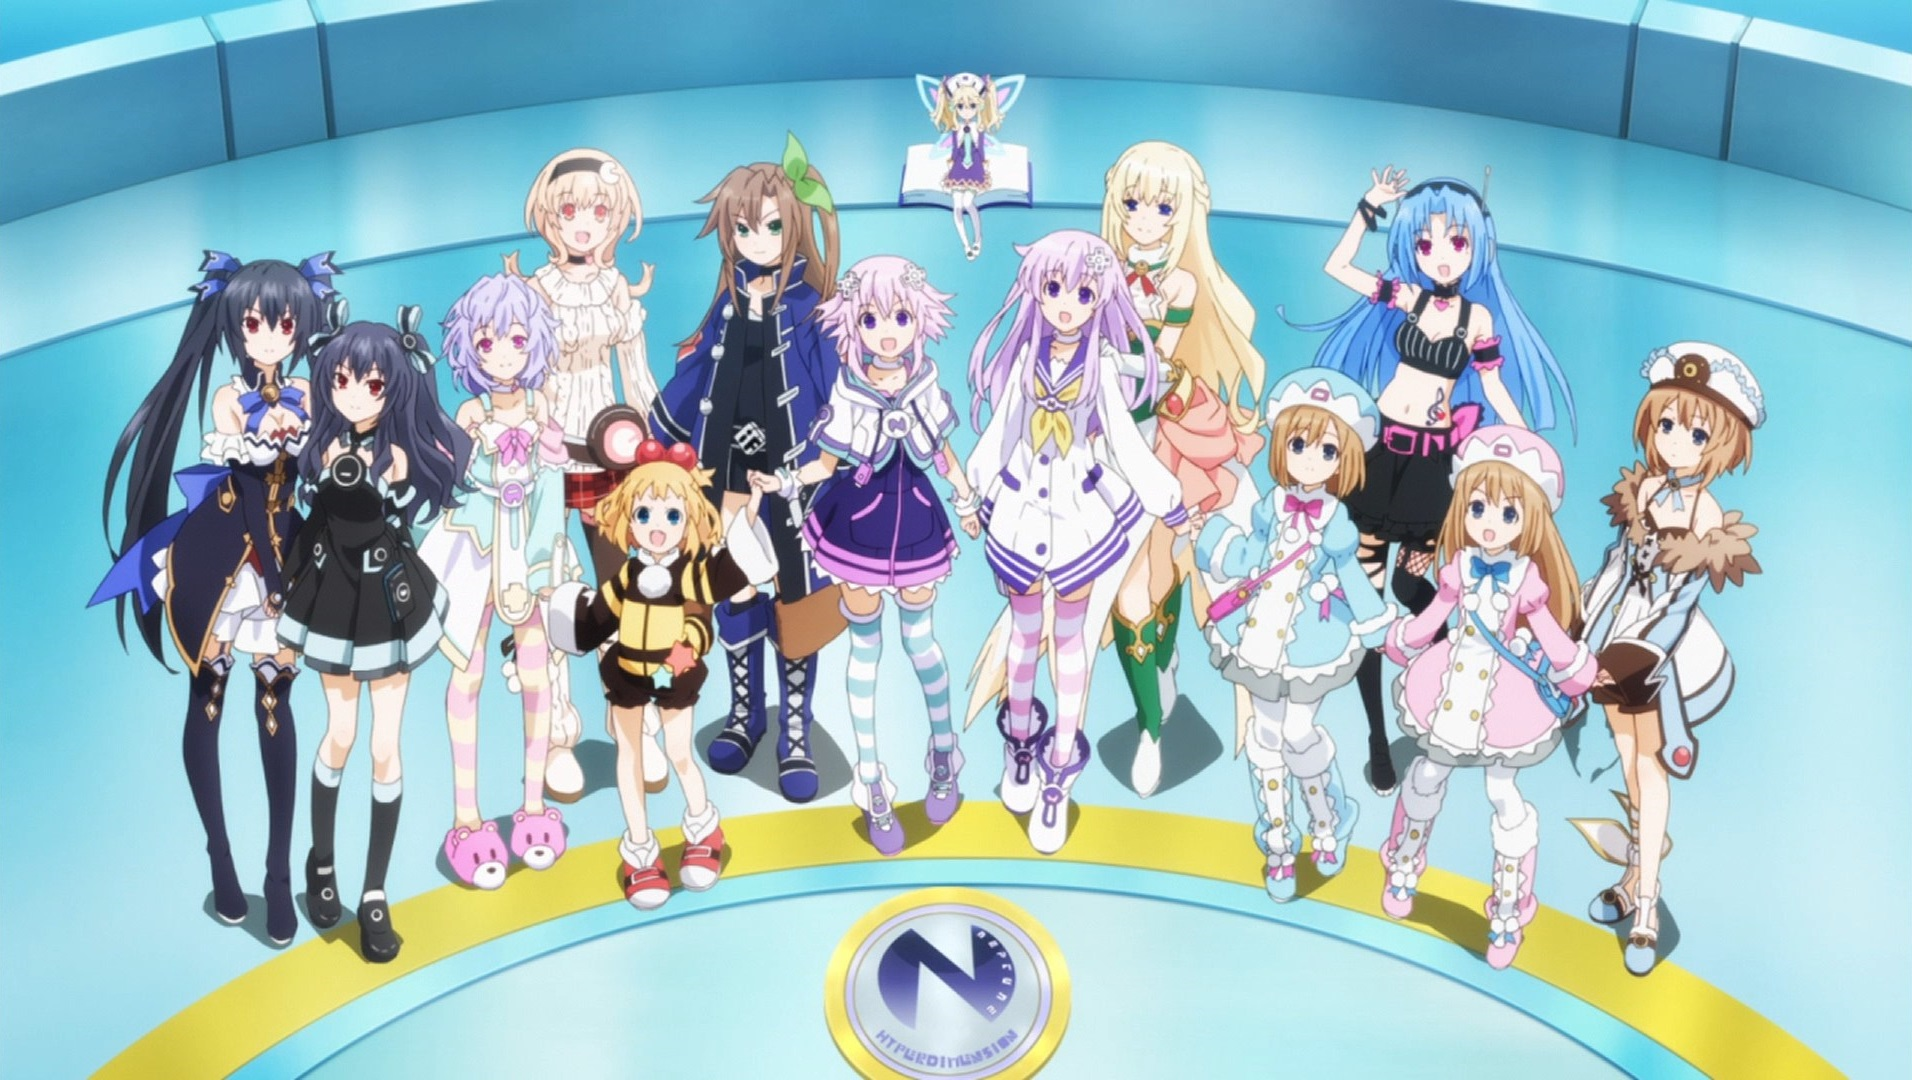 Hyperdimension Neptunia: The Animation